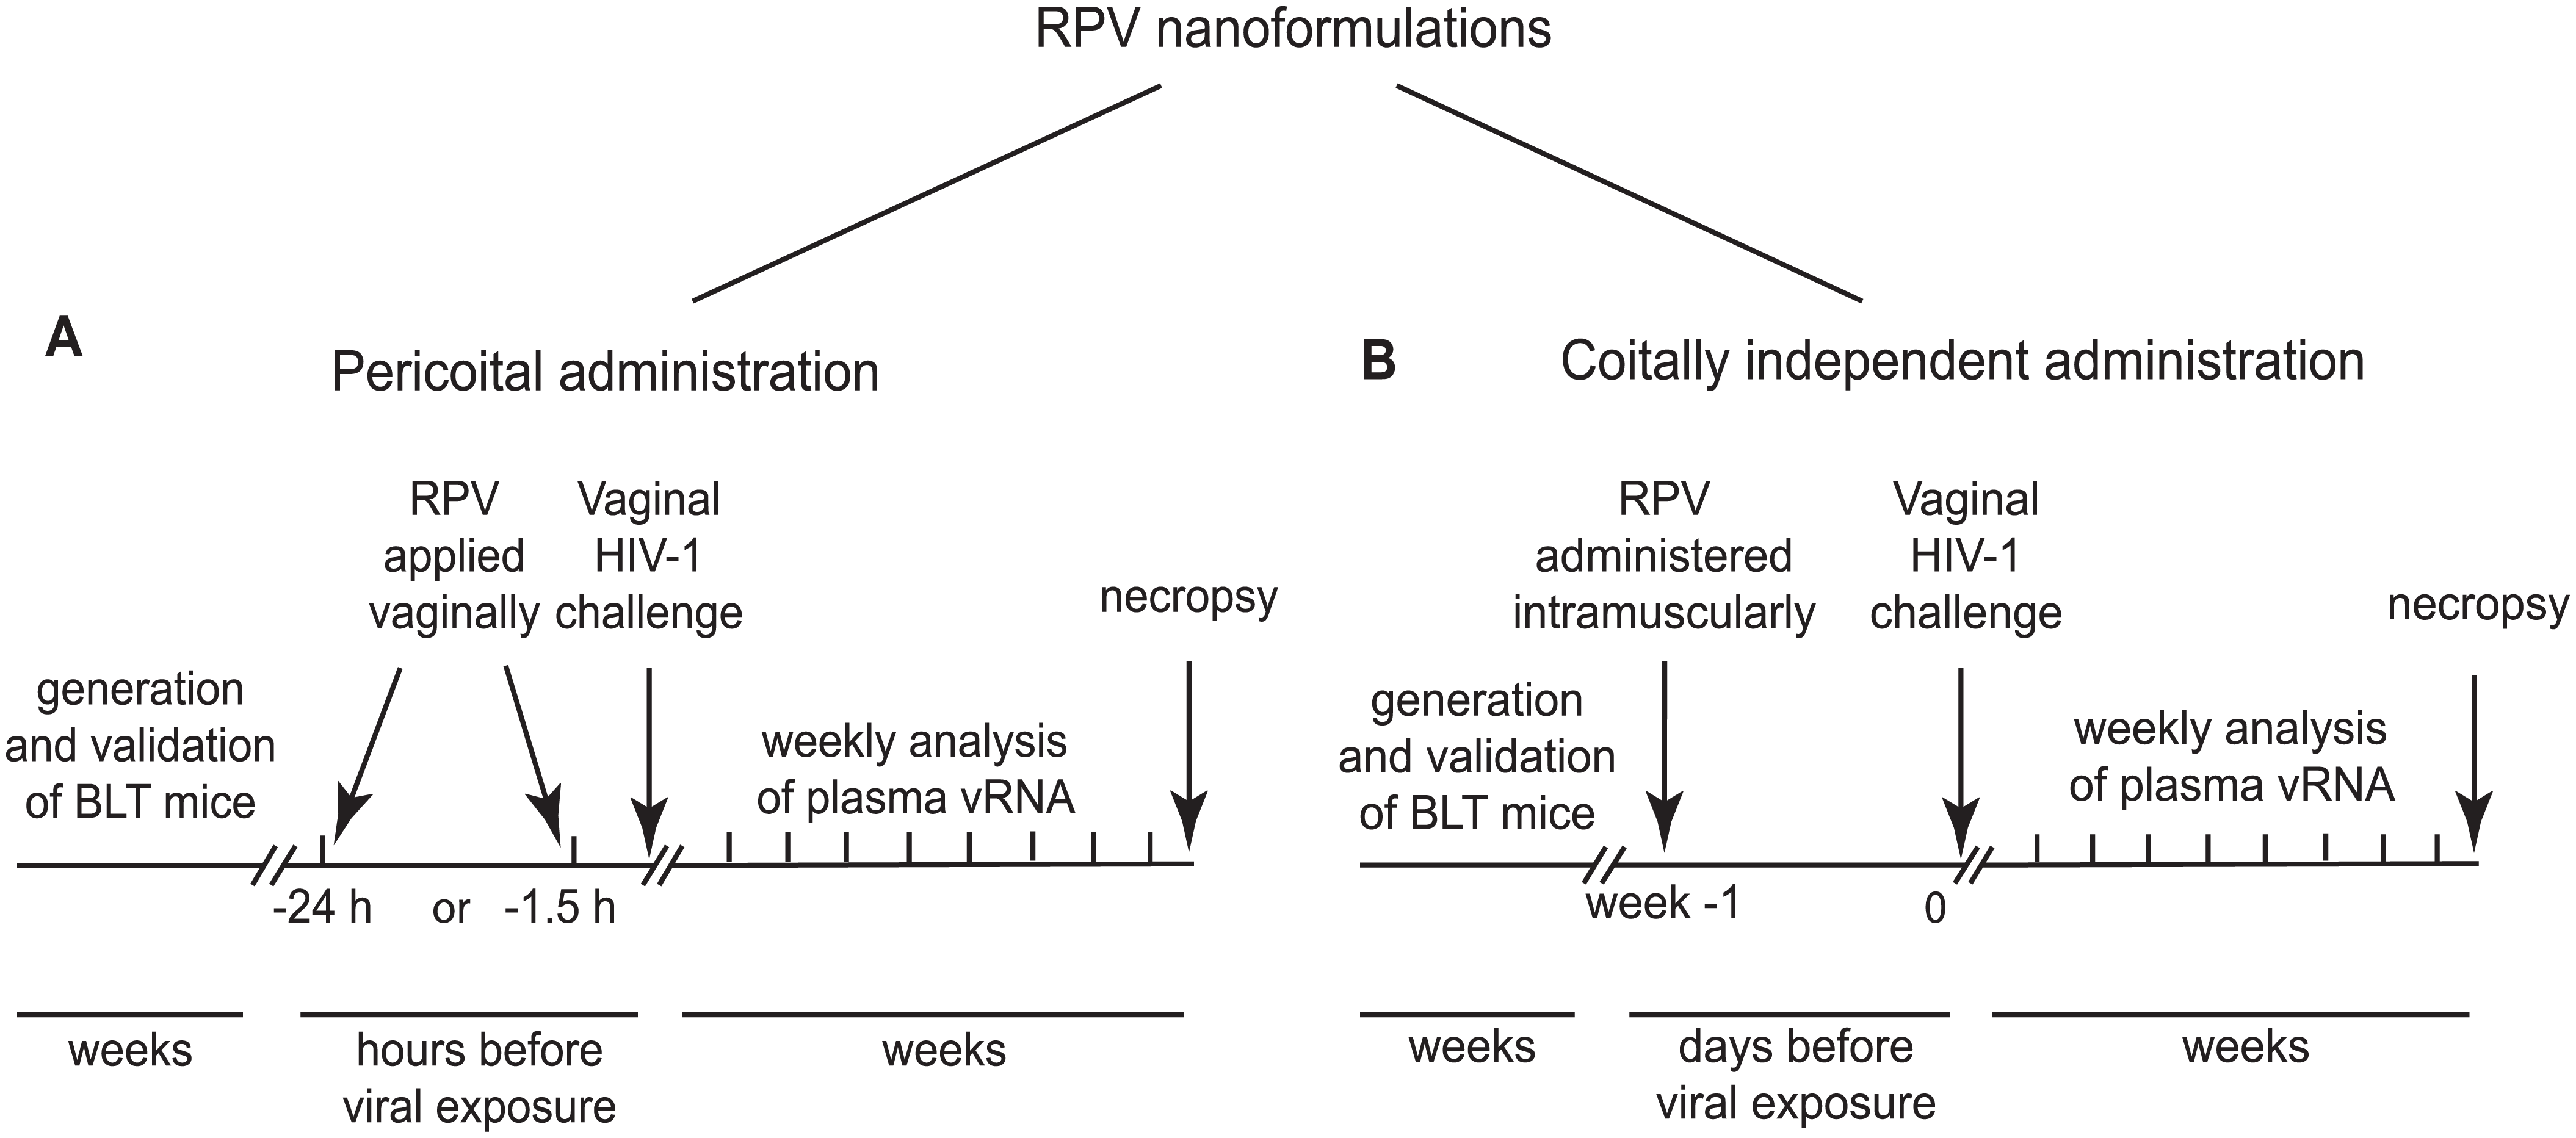 Experimental design for the evaluation of efficacy of RPV nanoformulations in prevention of vaginal HIV transmission in humanized BLT mice.